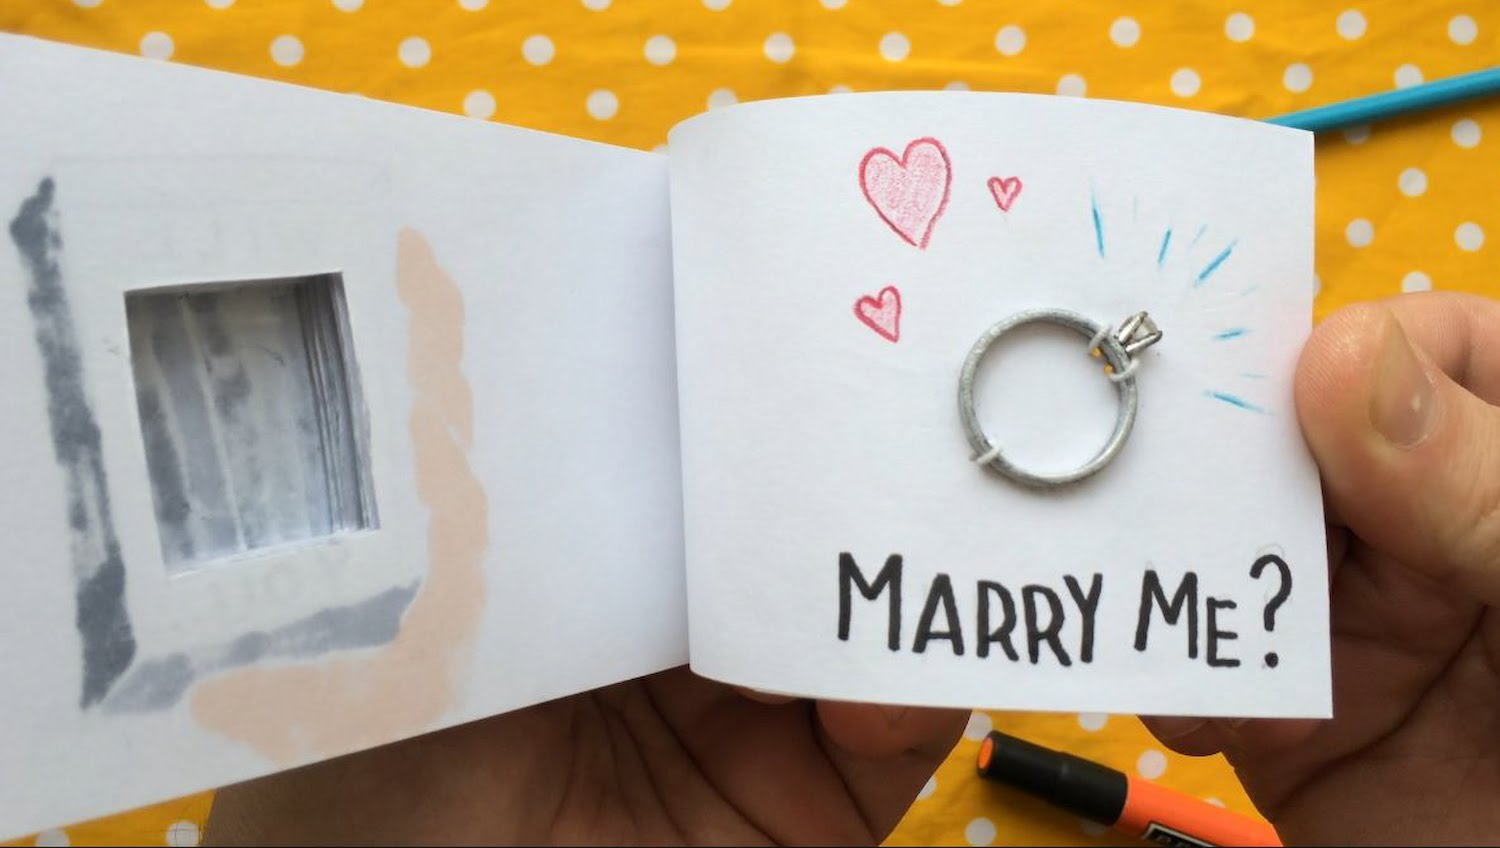 An Adorable HandDrawn Marriage Proposal Flip Book That Conceals an